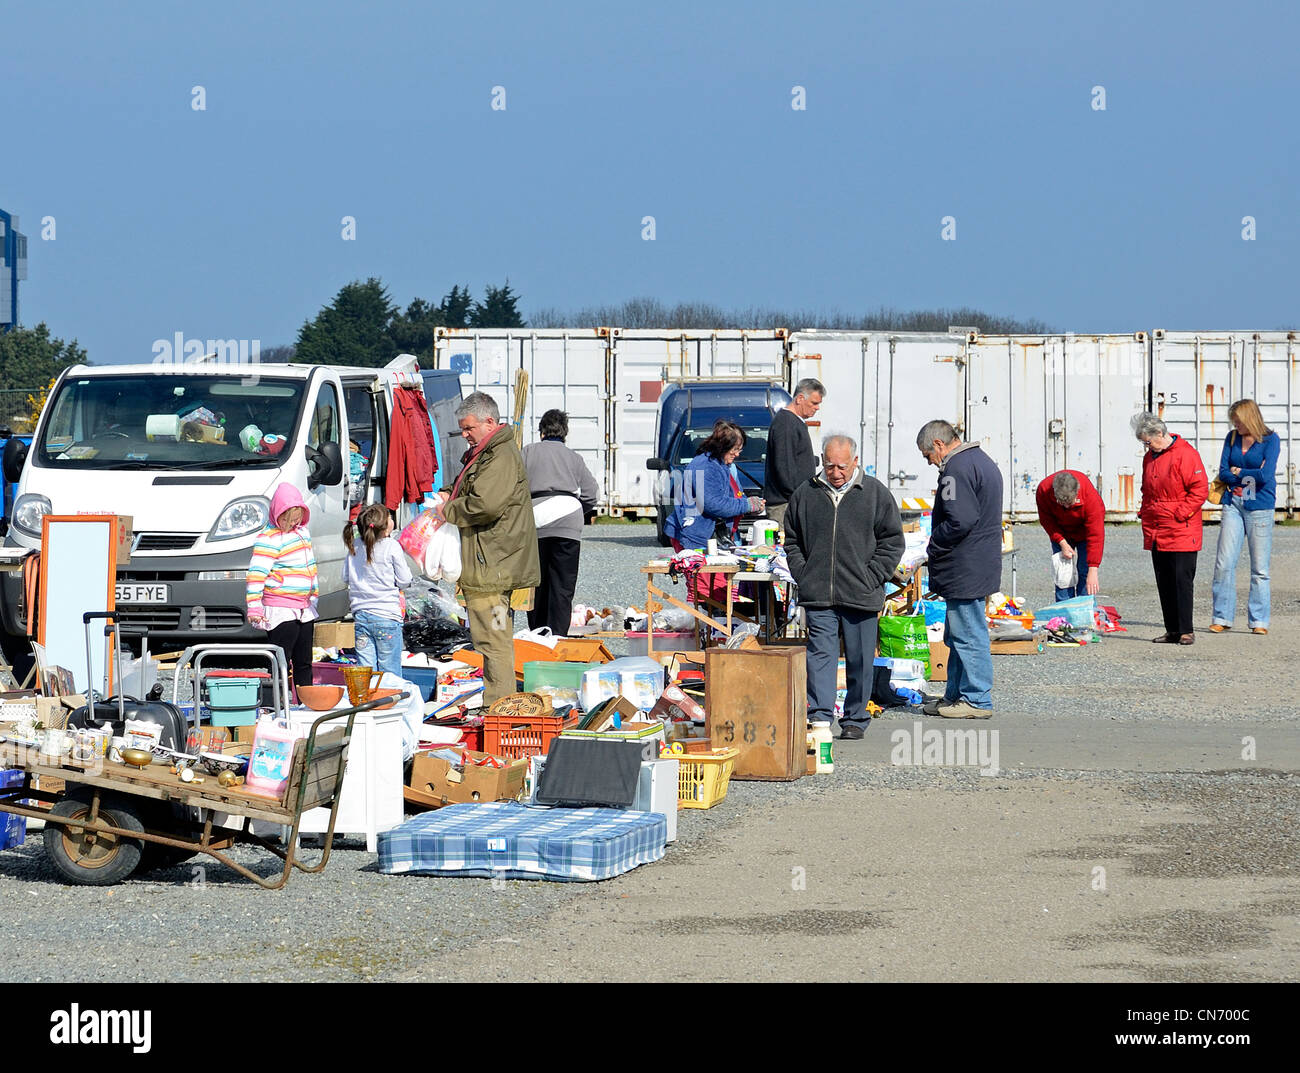 People browsing at a car boot sale near Redruth in Cornwall, UK - Stock Image